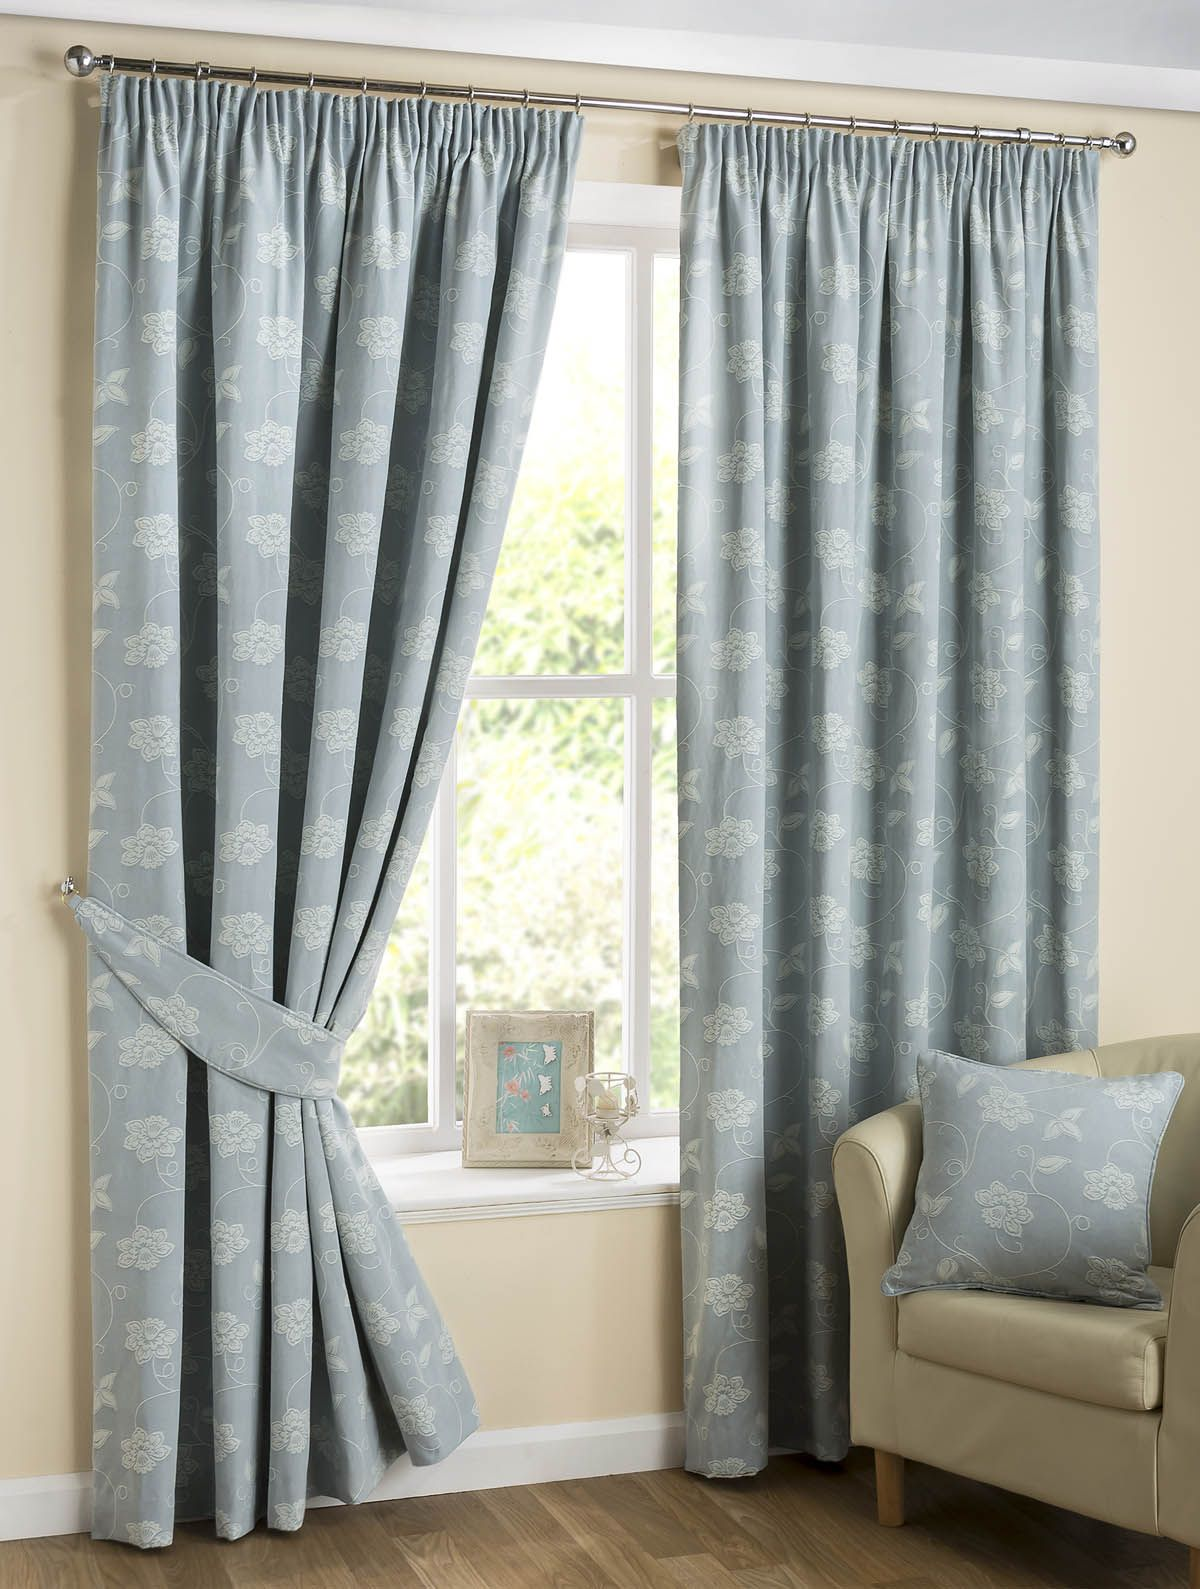 Floral Scroll Ready Made Lined Curtains Duck Egg Blue Pencil Pleat Curtains Cheap Uk Deliver Blue Striped Curtains Duck Egg Blue Curtains Duck Egg Curtains